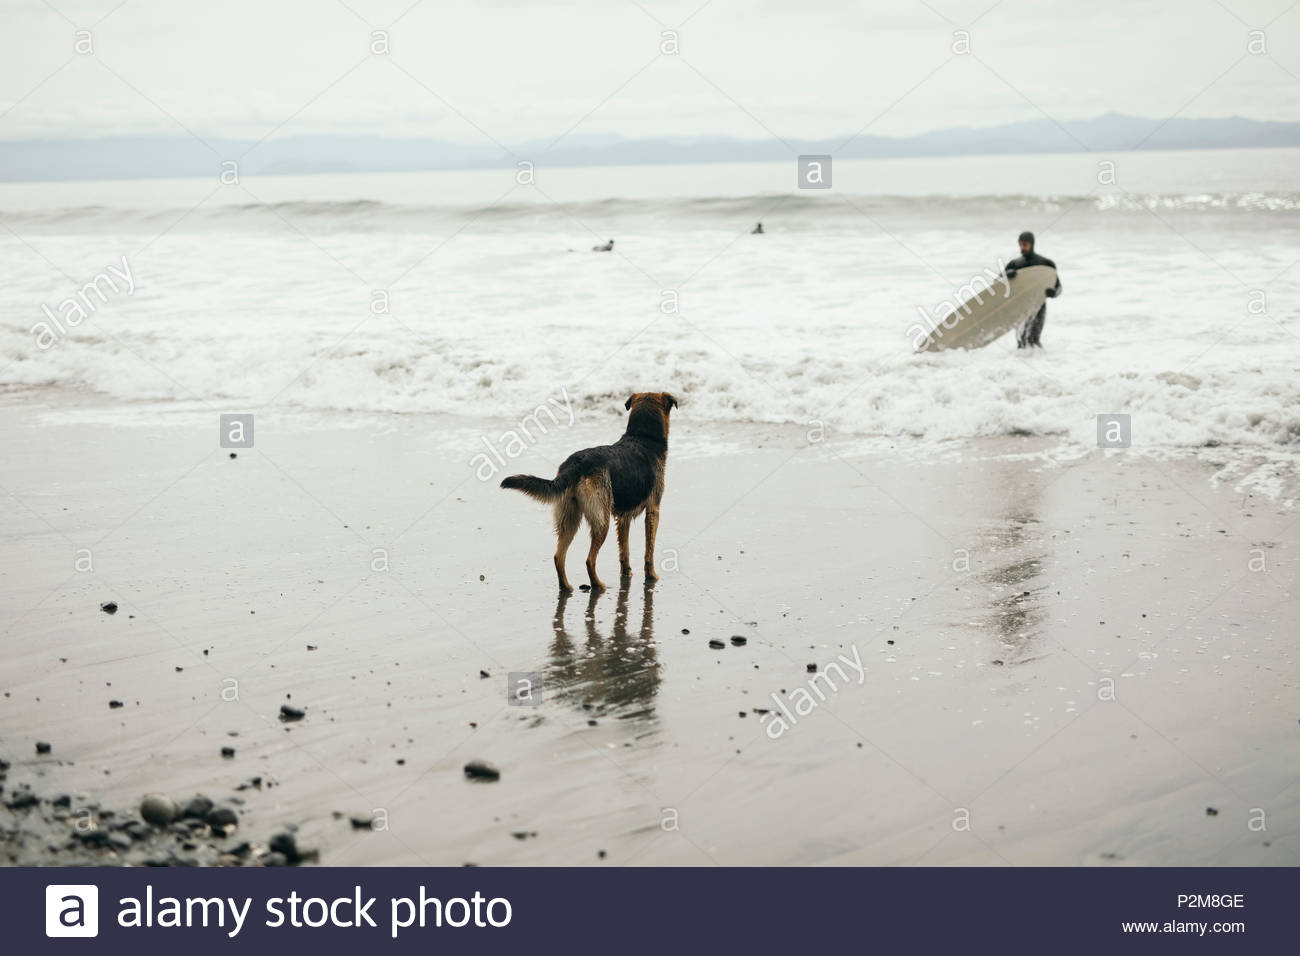 Dog watching surfer with surfboard in rugged ocean - Stock Image